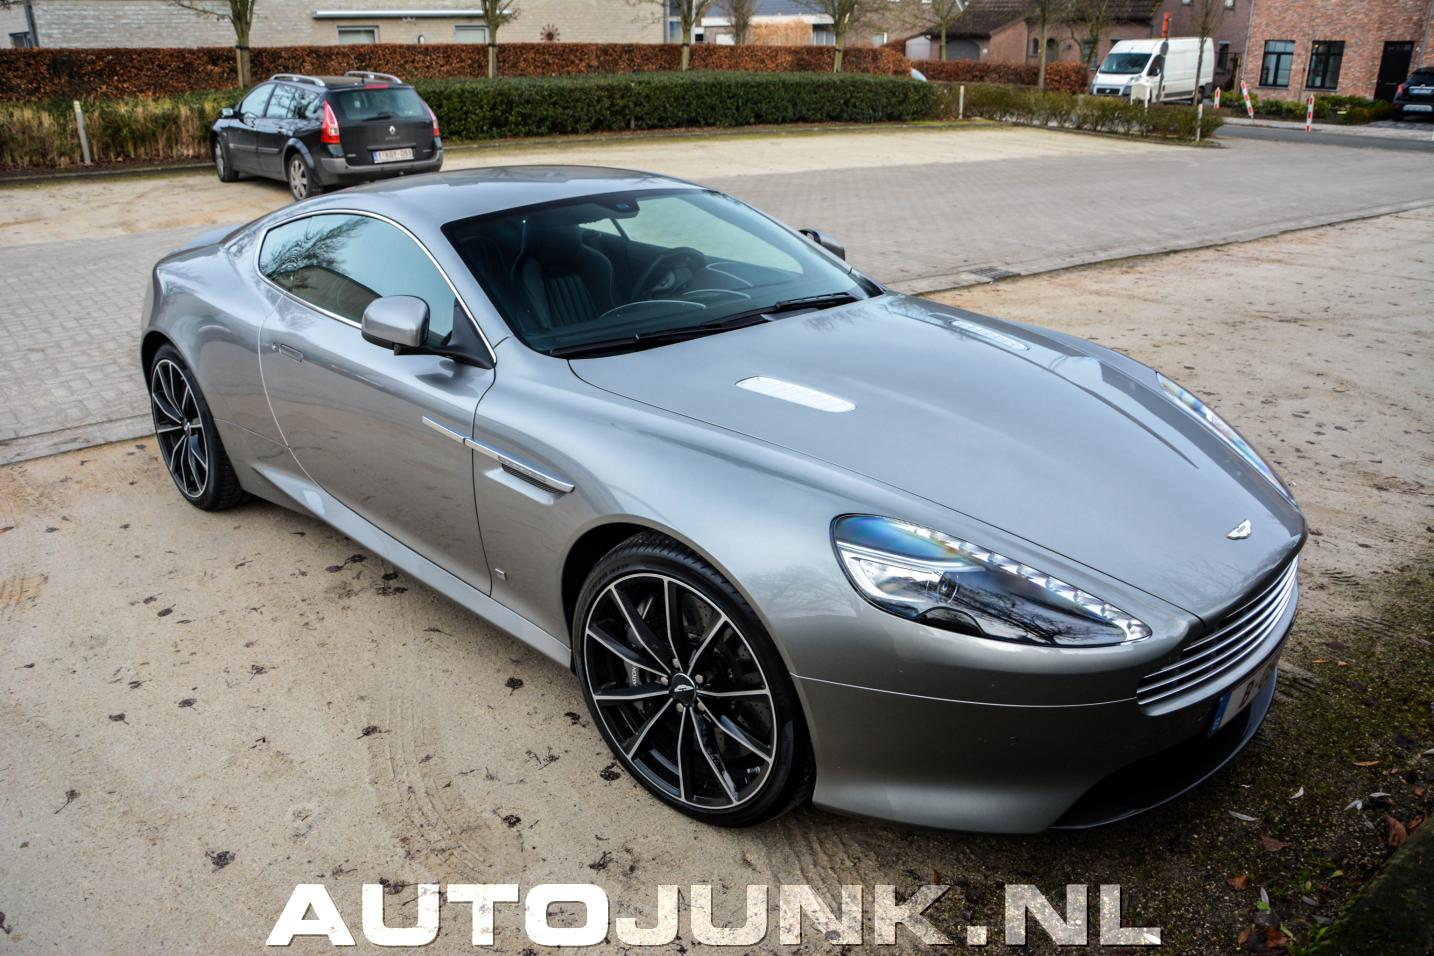 aston martin db9 gt bond edition 2016 with Aston Martin Db9 Gt 2016 Bond Edition on 2016 Aston Martin Db9 Gt Monterey 2015 likewise Citroen Cactus M Concept Mehari 104706 together with 2016 Chrysler 200 Review Cost Specs And Photos in addition 18 further Aston Martin Db9 Gt 2016 Bond Edition.